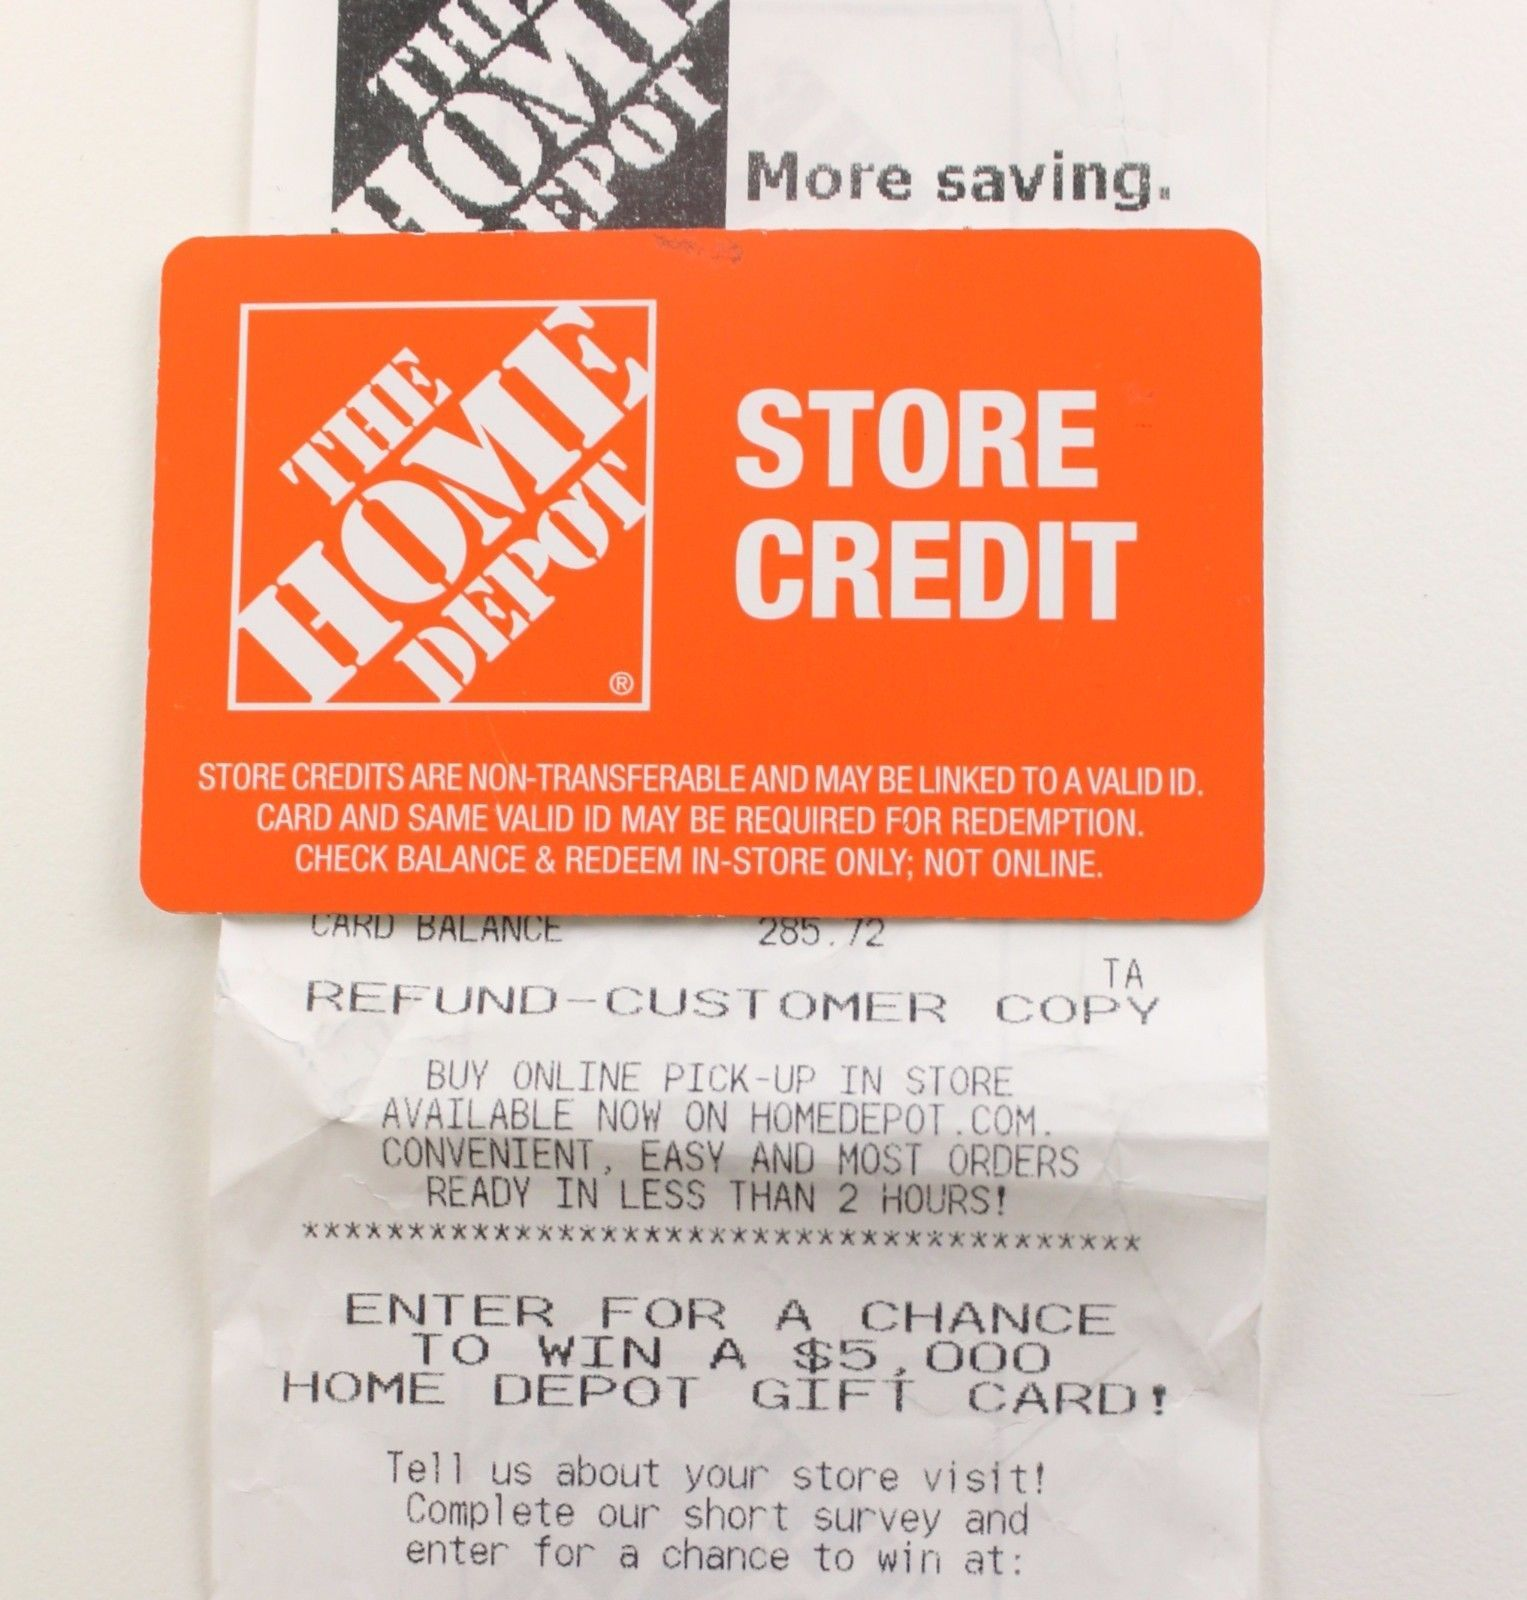 Coupons GiftCards Home Depot Store Credit 285.72